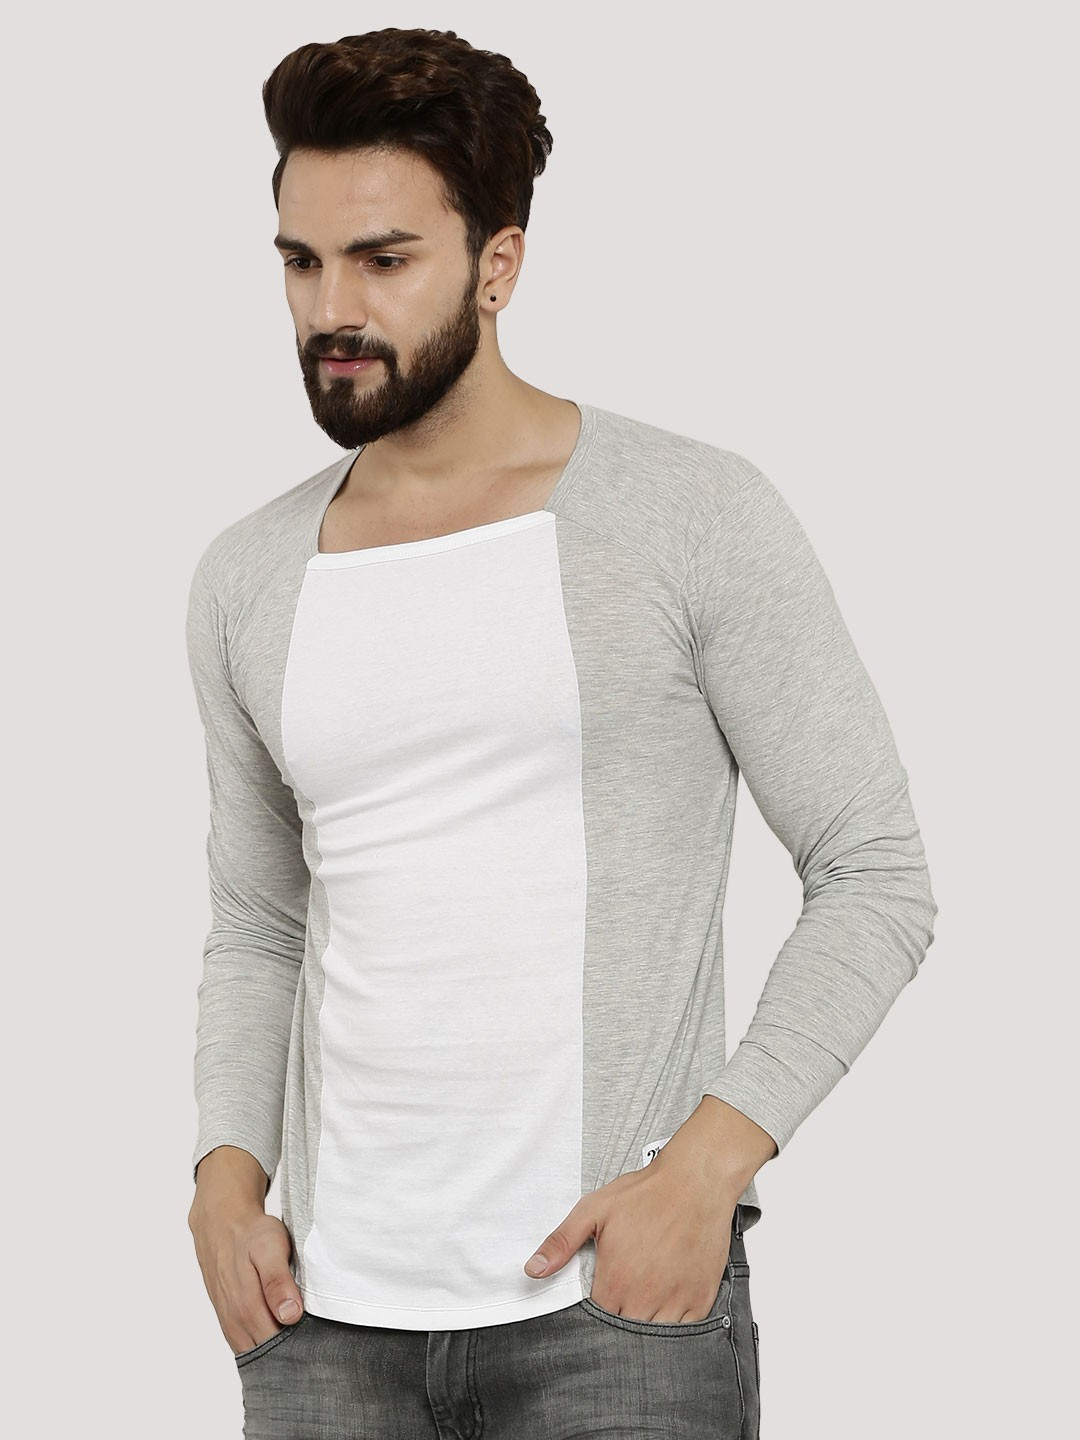 Buy kultprit square neck full sleeve t shirt for men men for Full sleeves t shirts for men